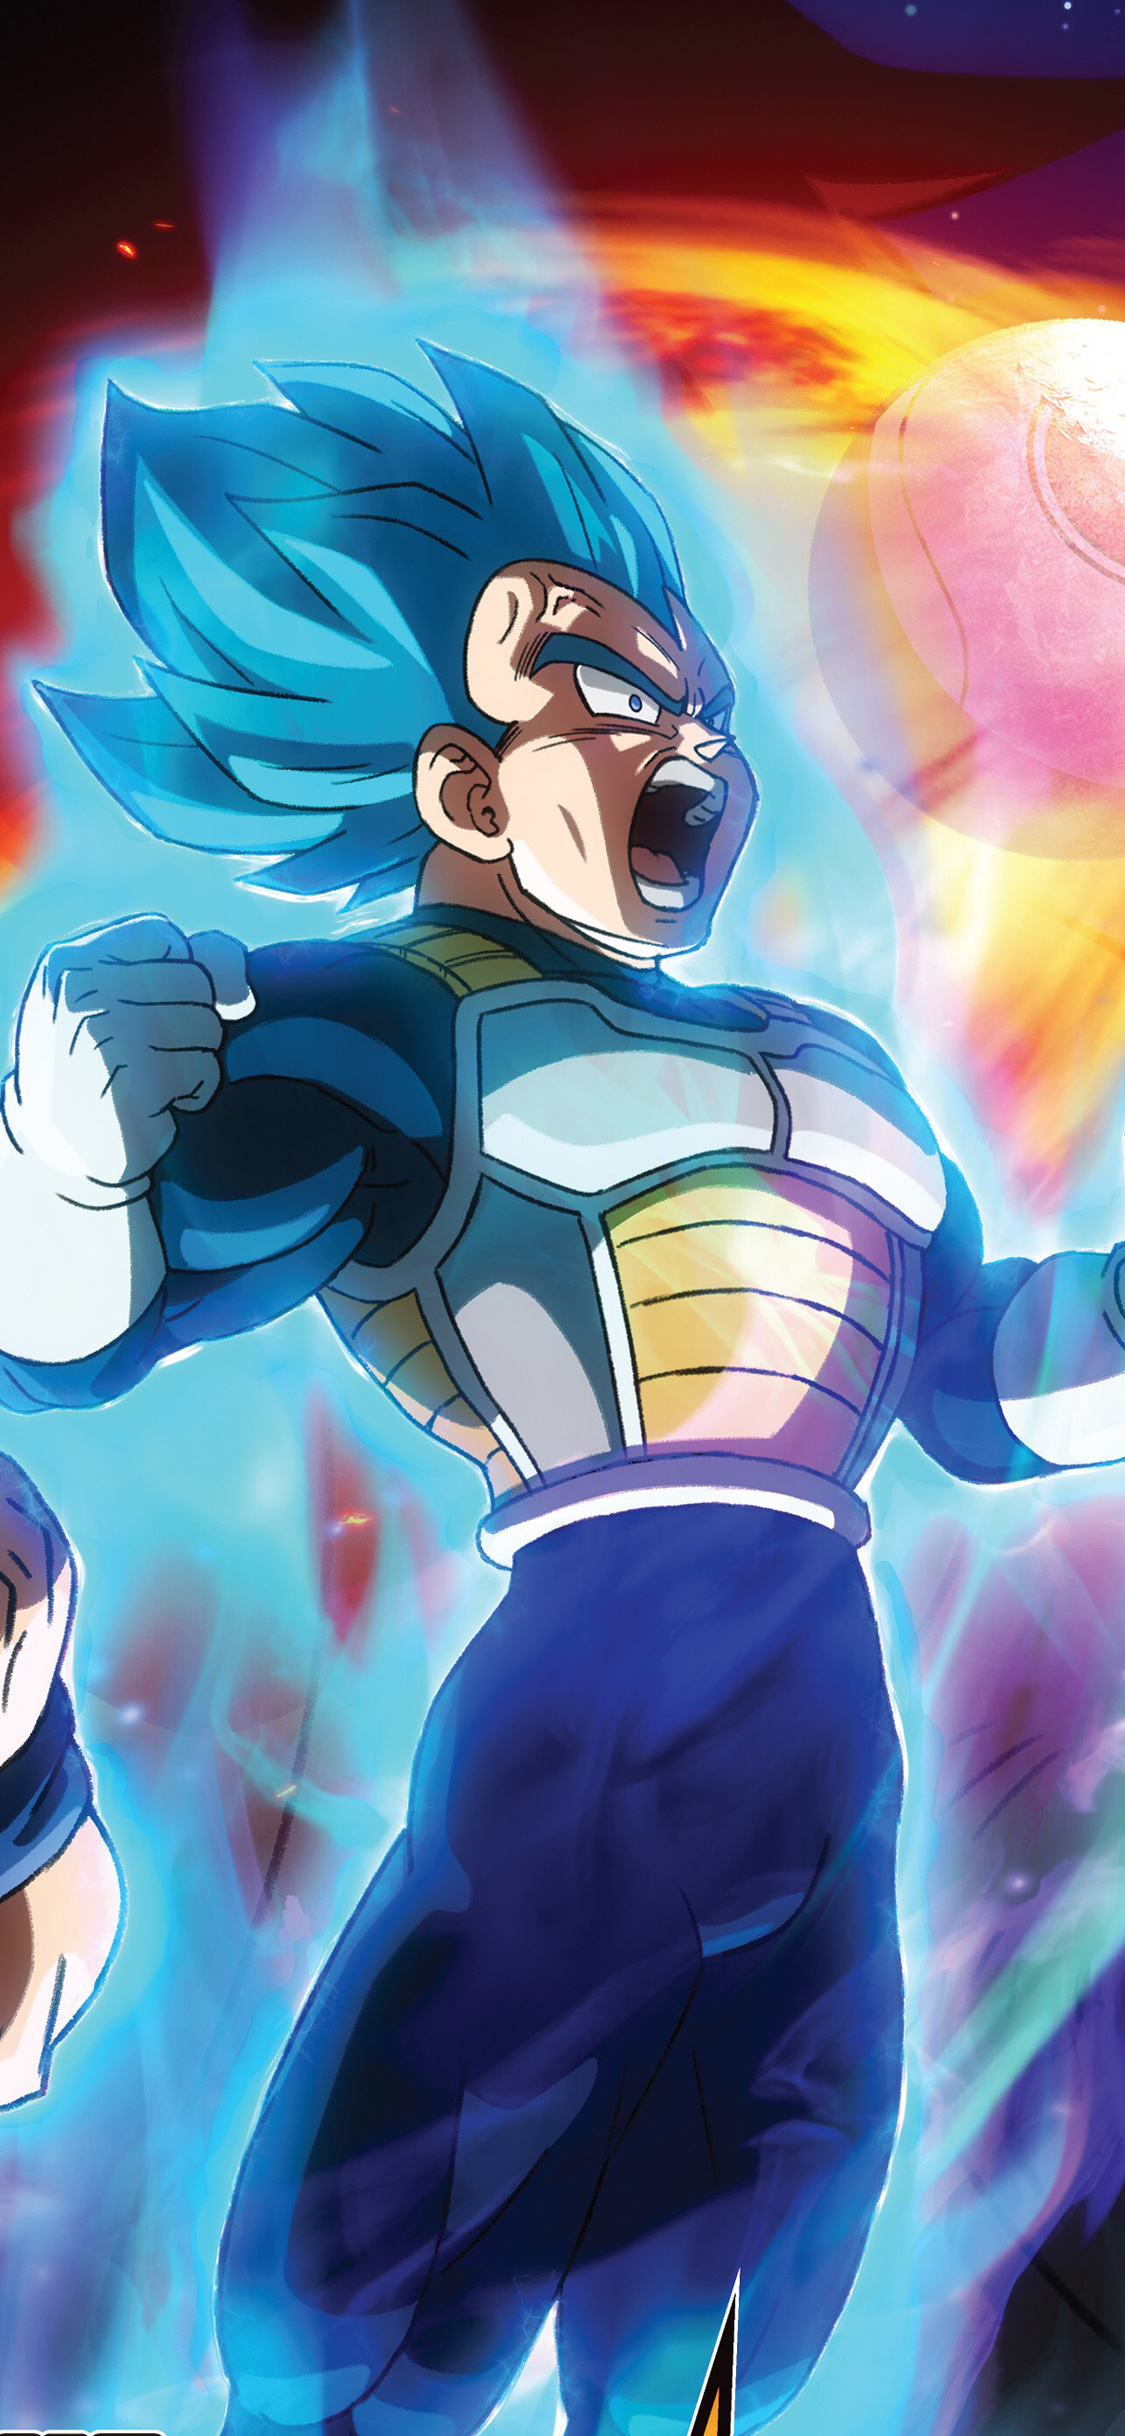 1125x2436 Dragon Ball Super Broly Movie 2019 Iphone Xs